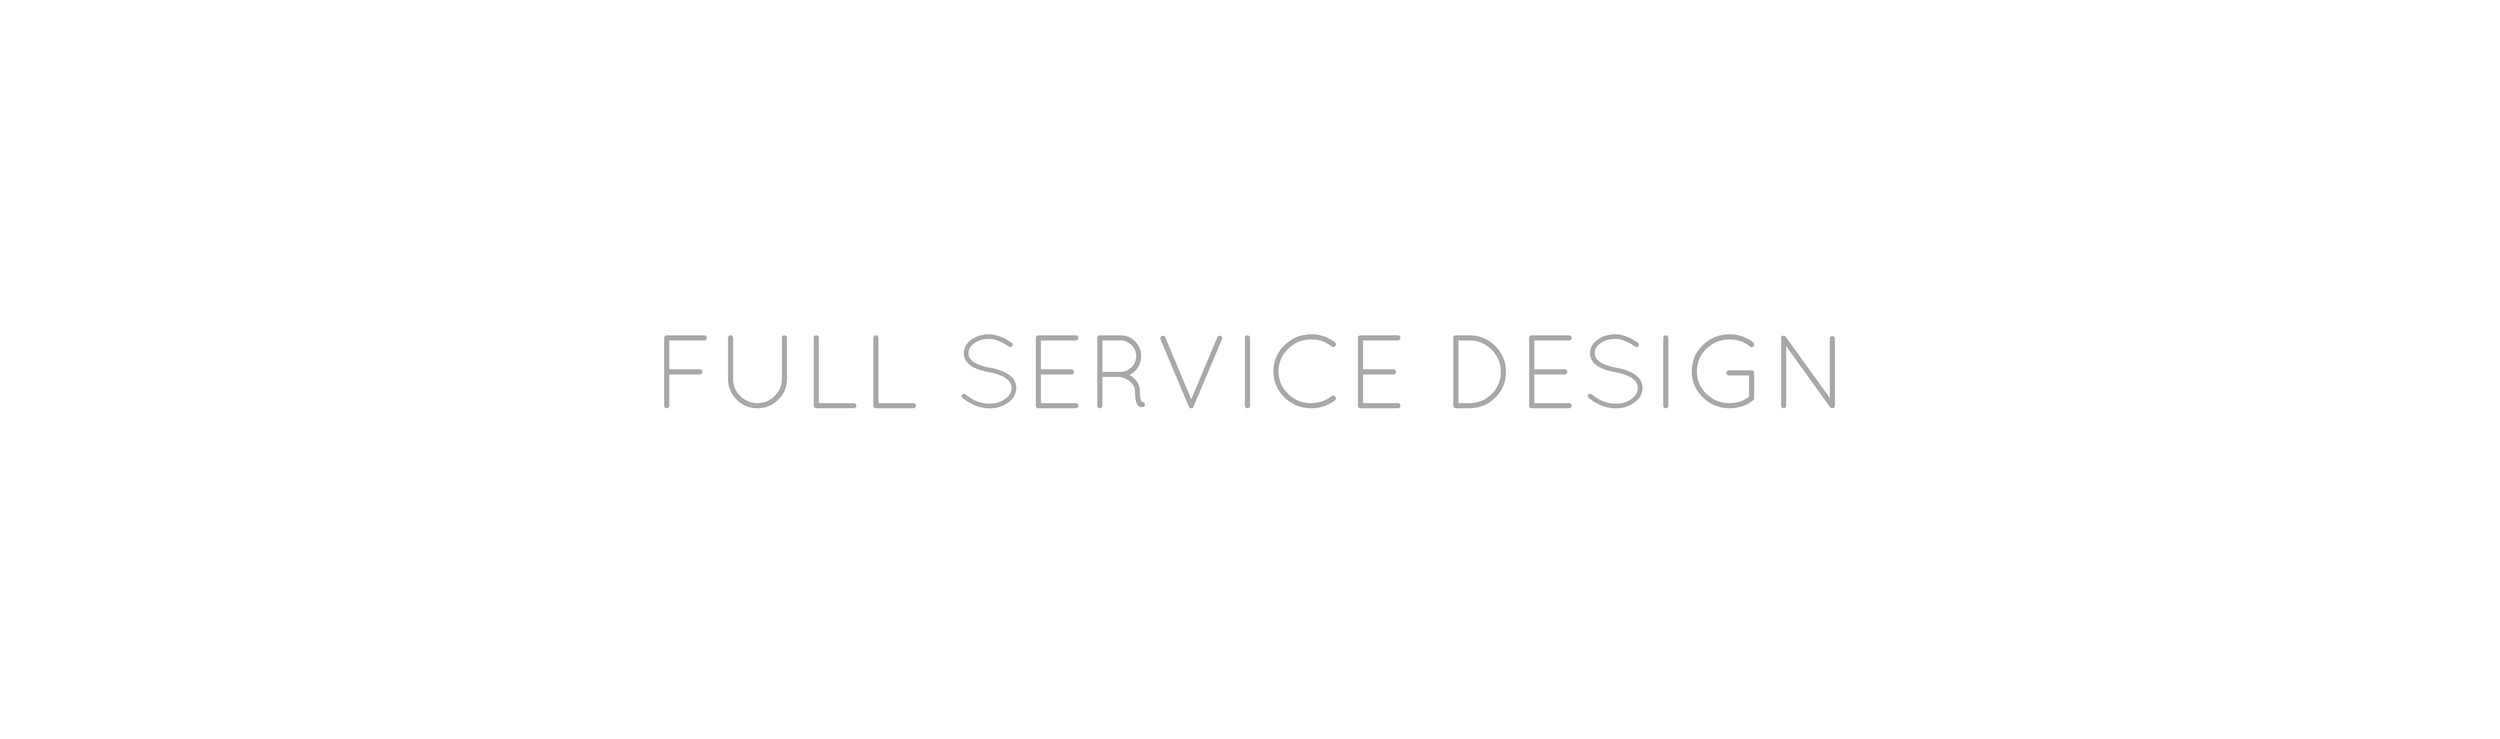 At LFD, we are a full service residential design firm specializing in:  + New Construction  + Remodels  + Room Design  + Furniture/decor planning  + Styling